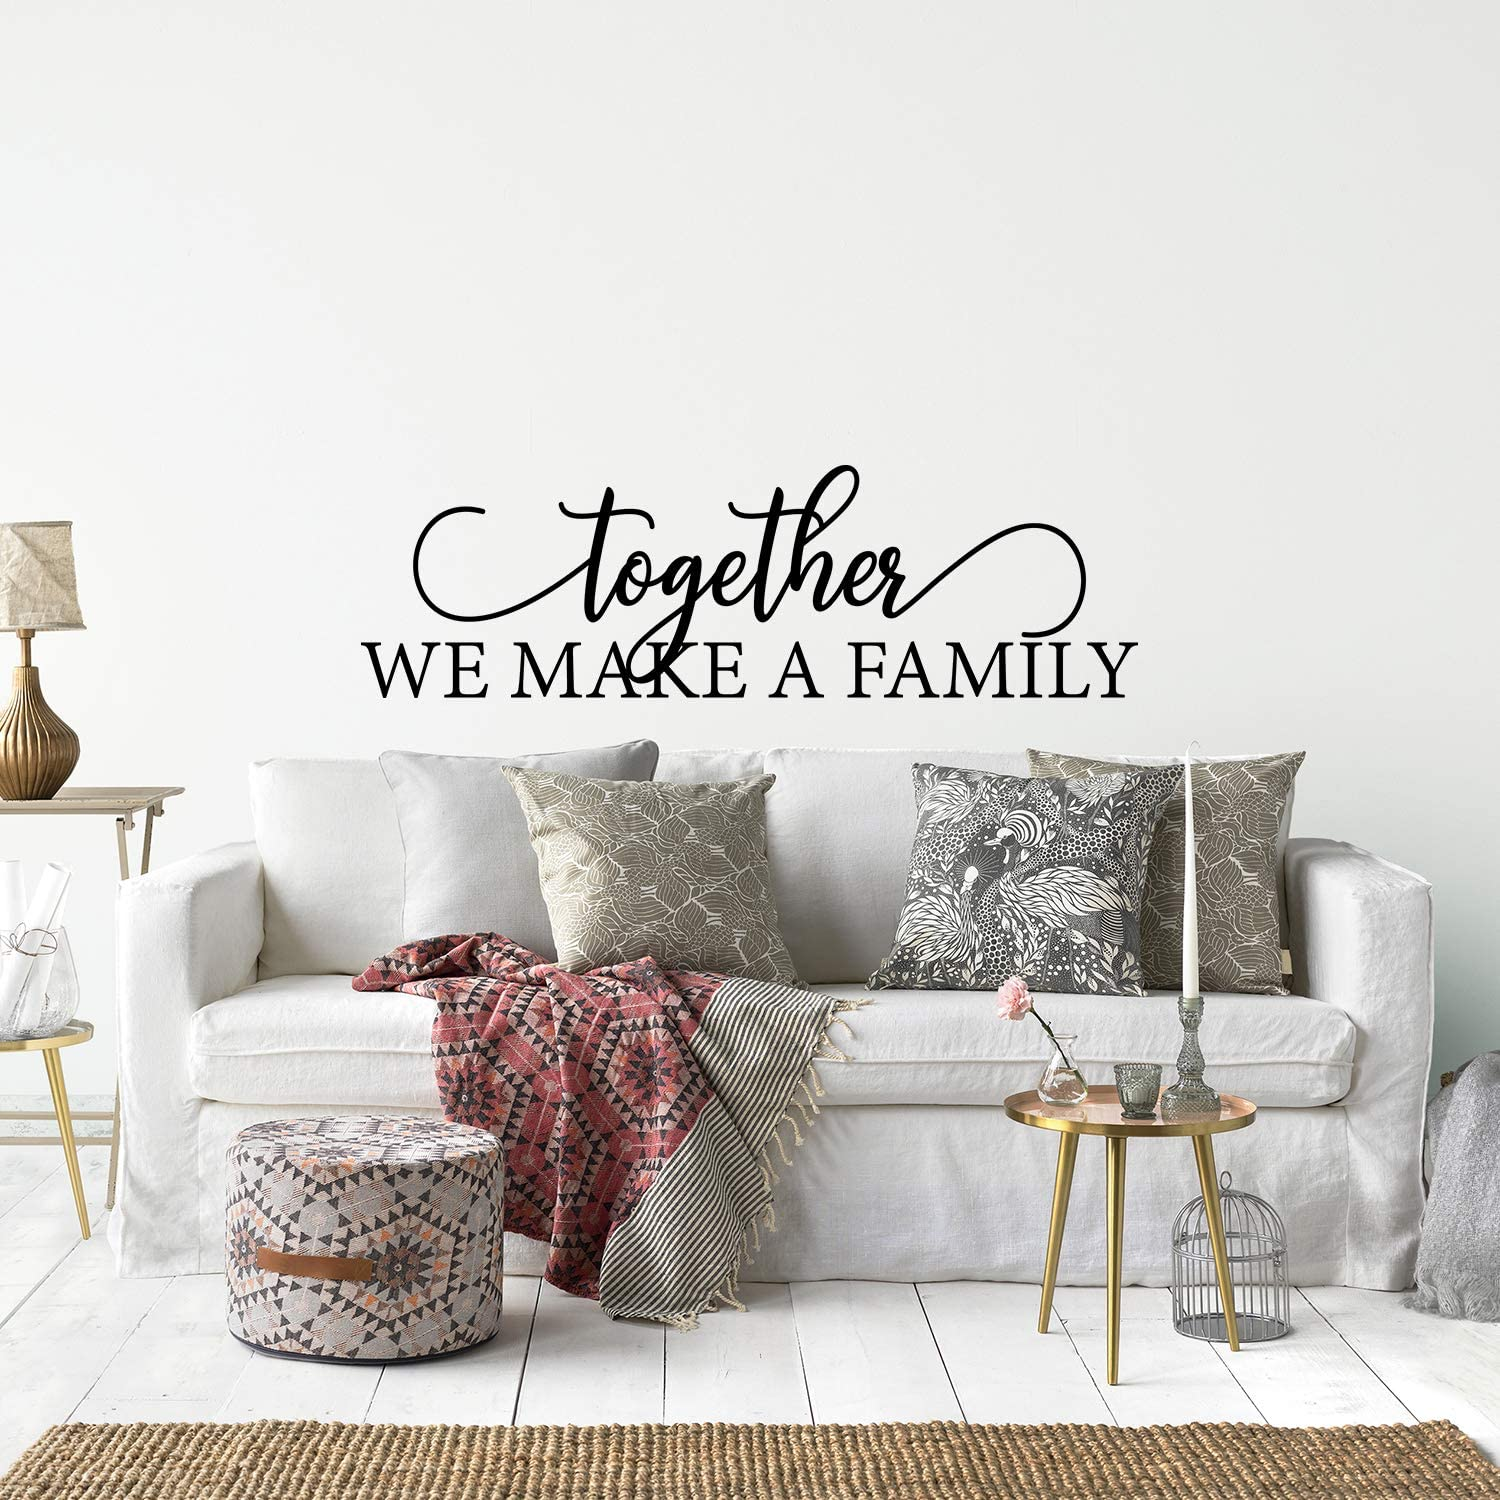 Amazon Com My Vinyl Story Family Wall Decals For Living Room Decor Family Wall Decor Wall Stickers Decorations Home Art Bedroom Love Decals Quotes Word Together We Make A Family Home